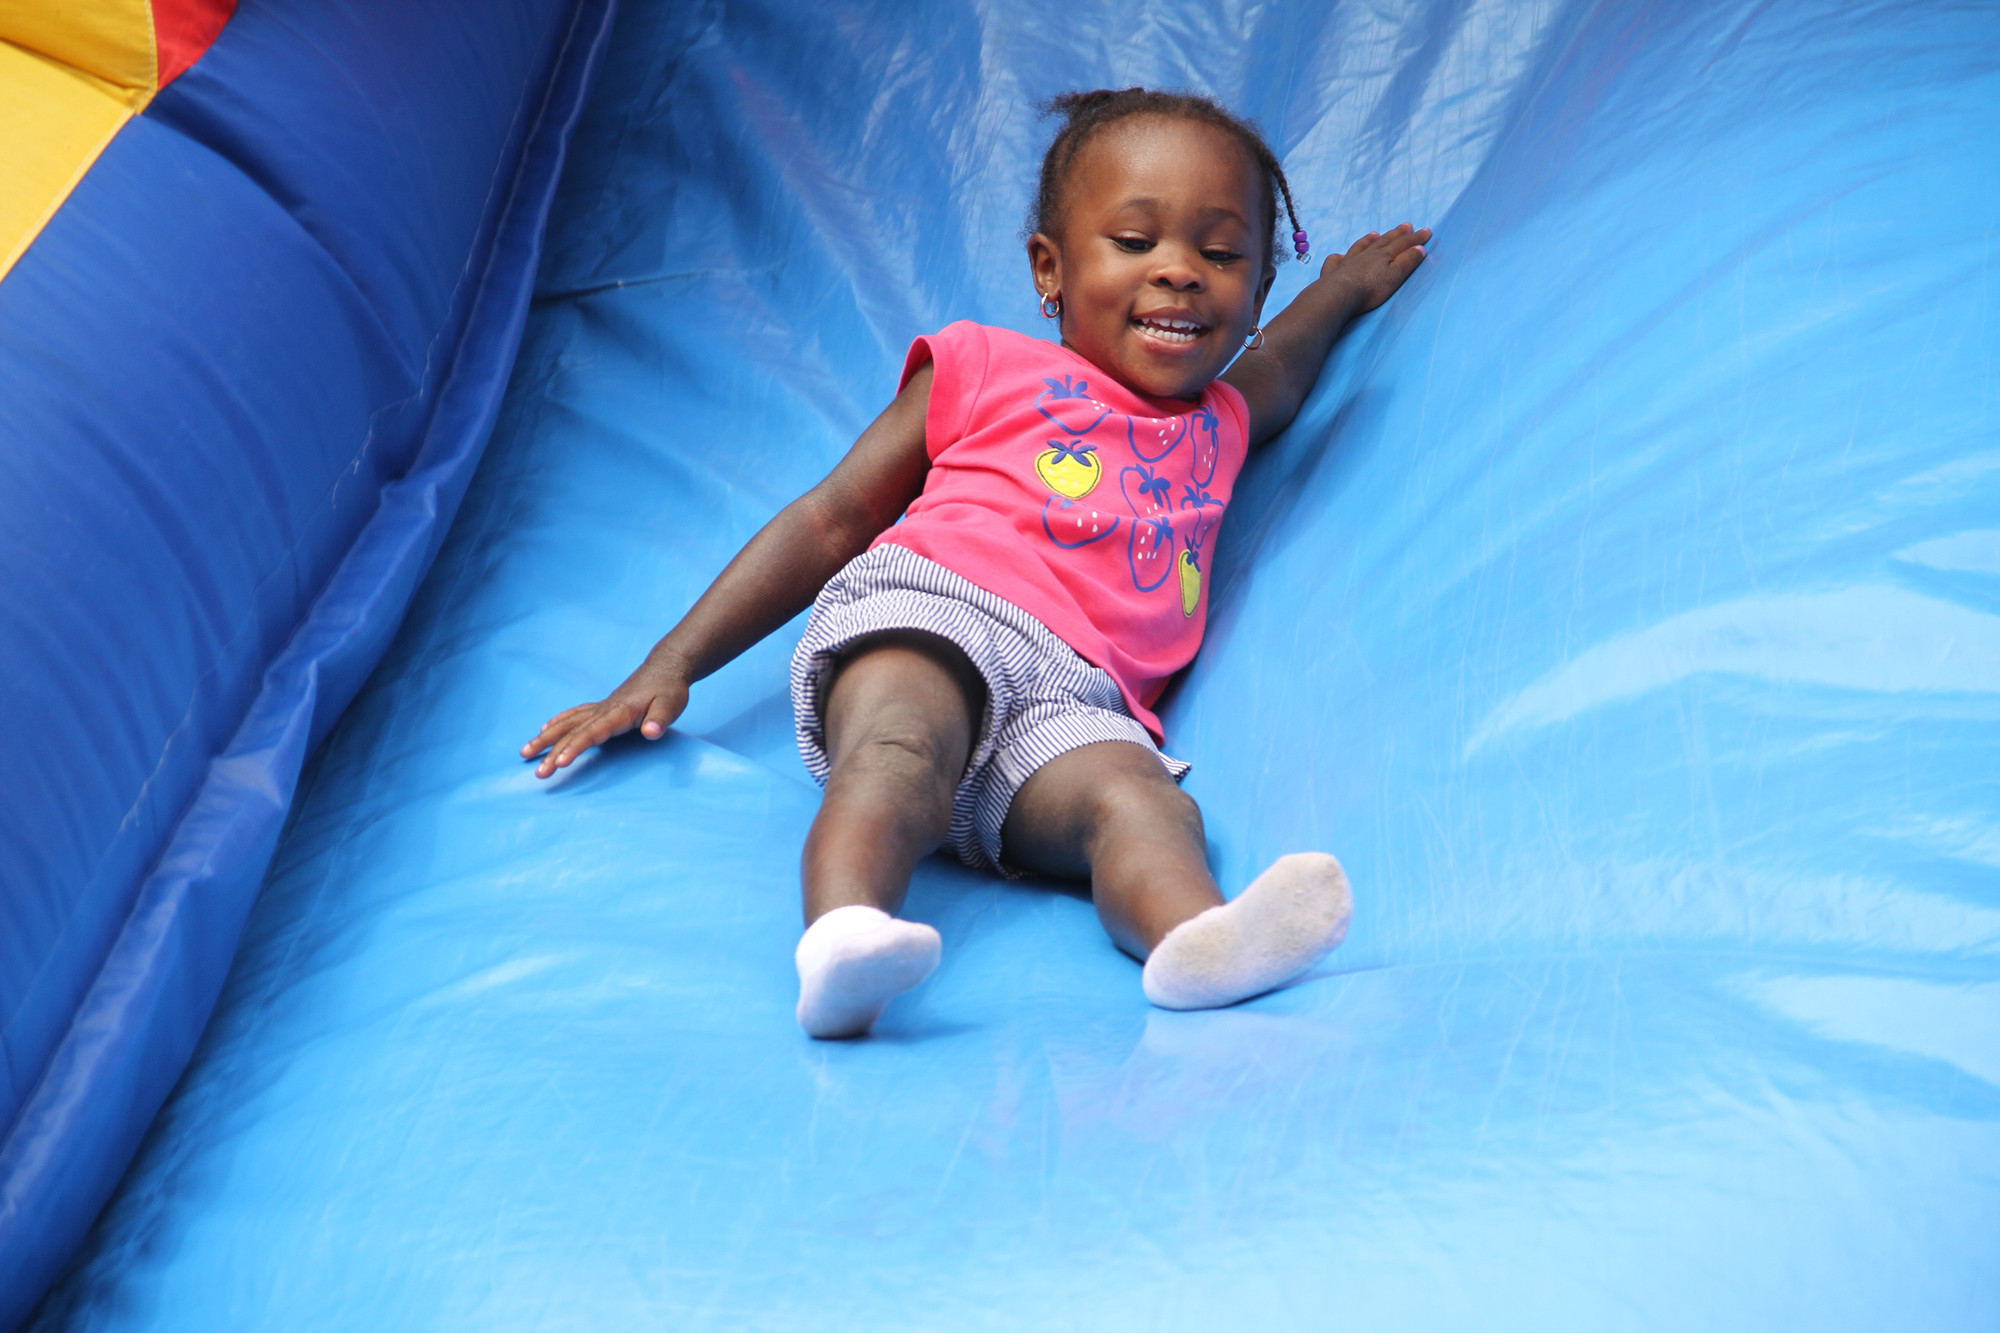 Shaliyah Lewis bounced down the giant slide.